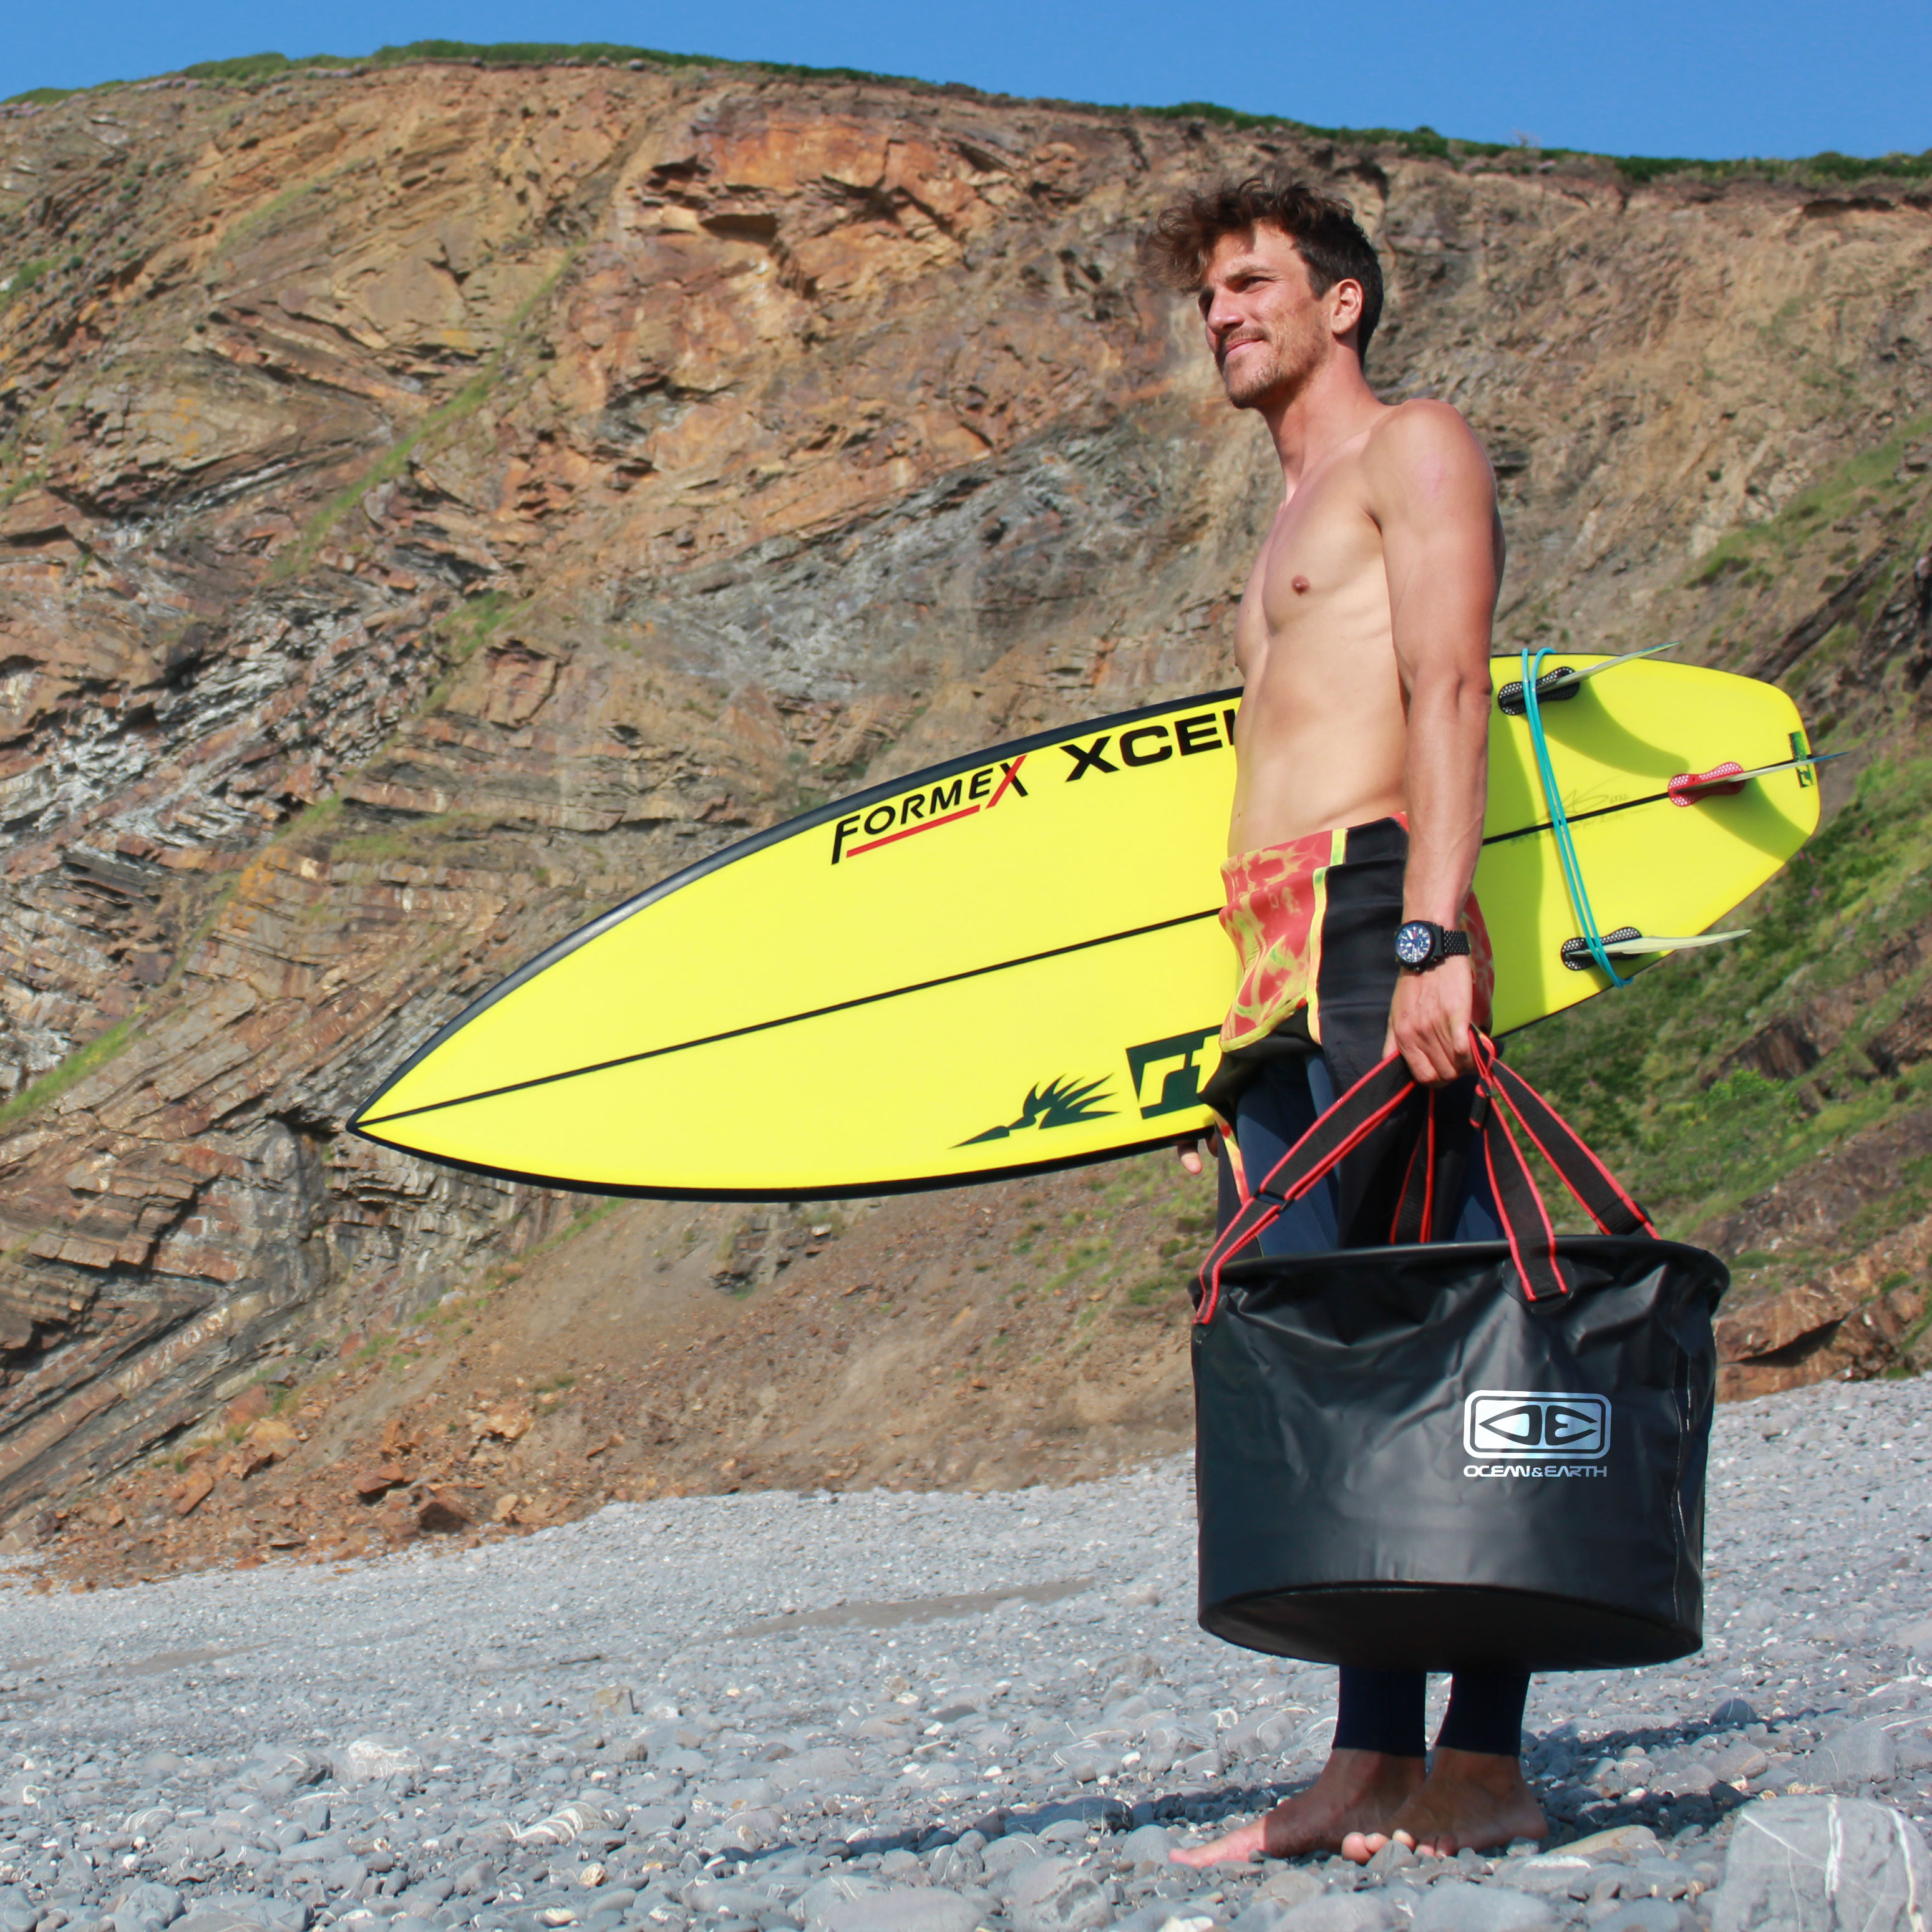 Surf wetsuit accessories & aftercare guide